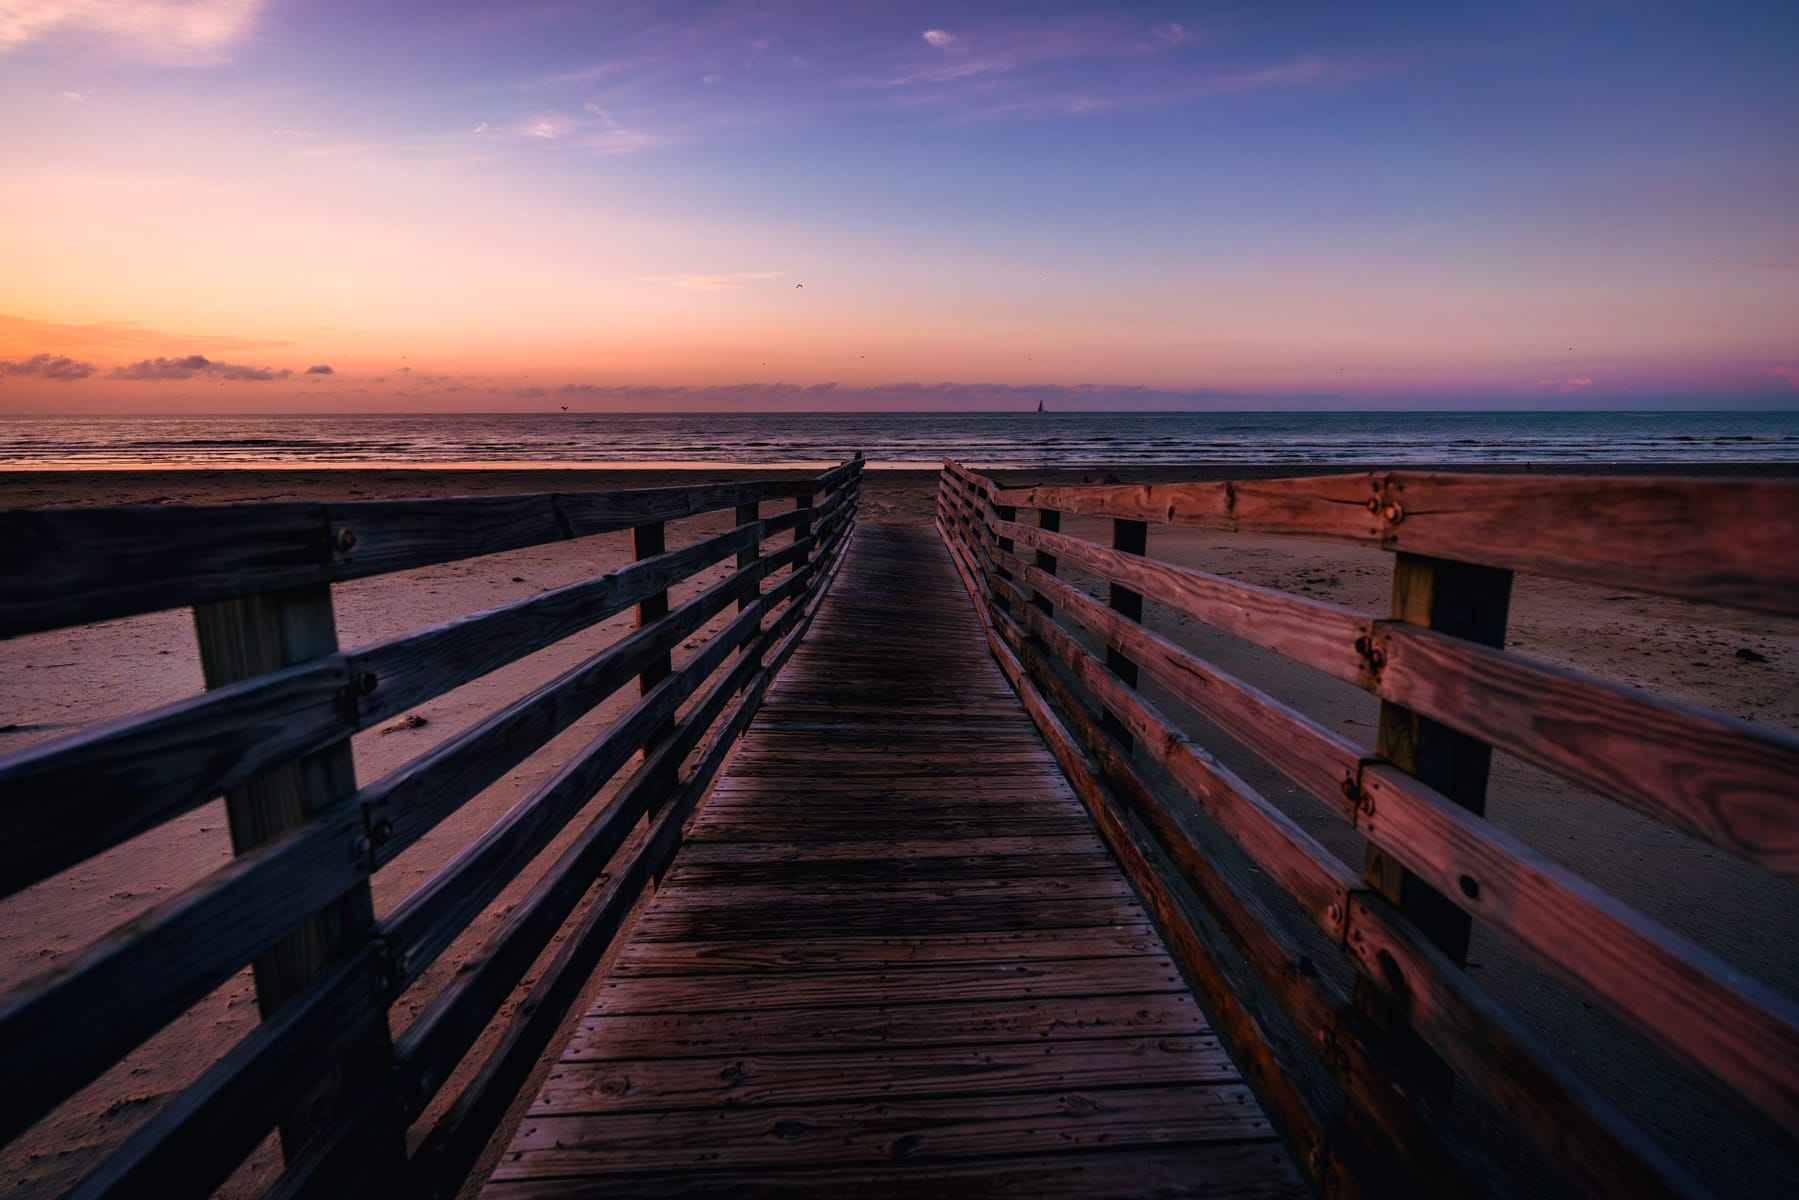 A wooden walkway leads to the Gulf of Mexico beach on Galveston Island, Texas.